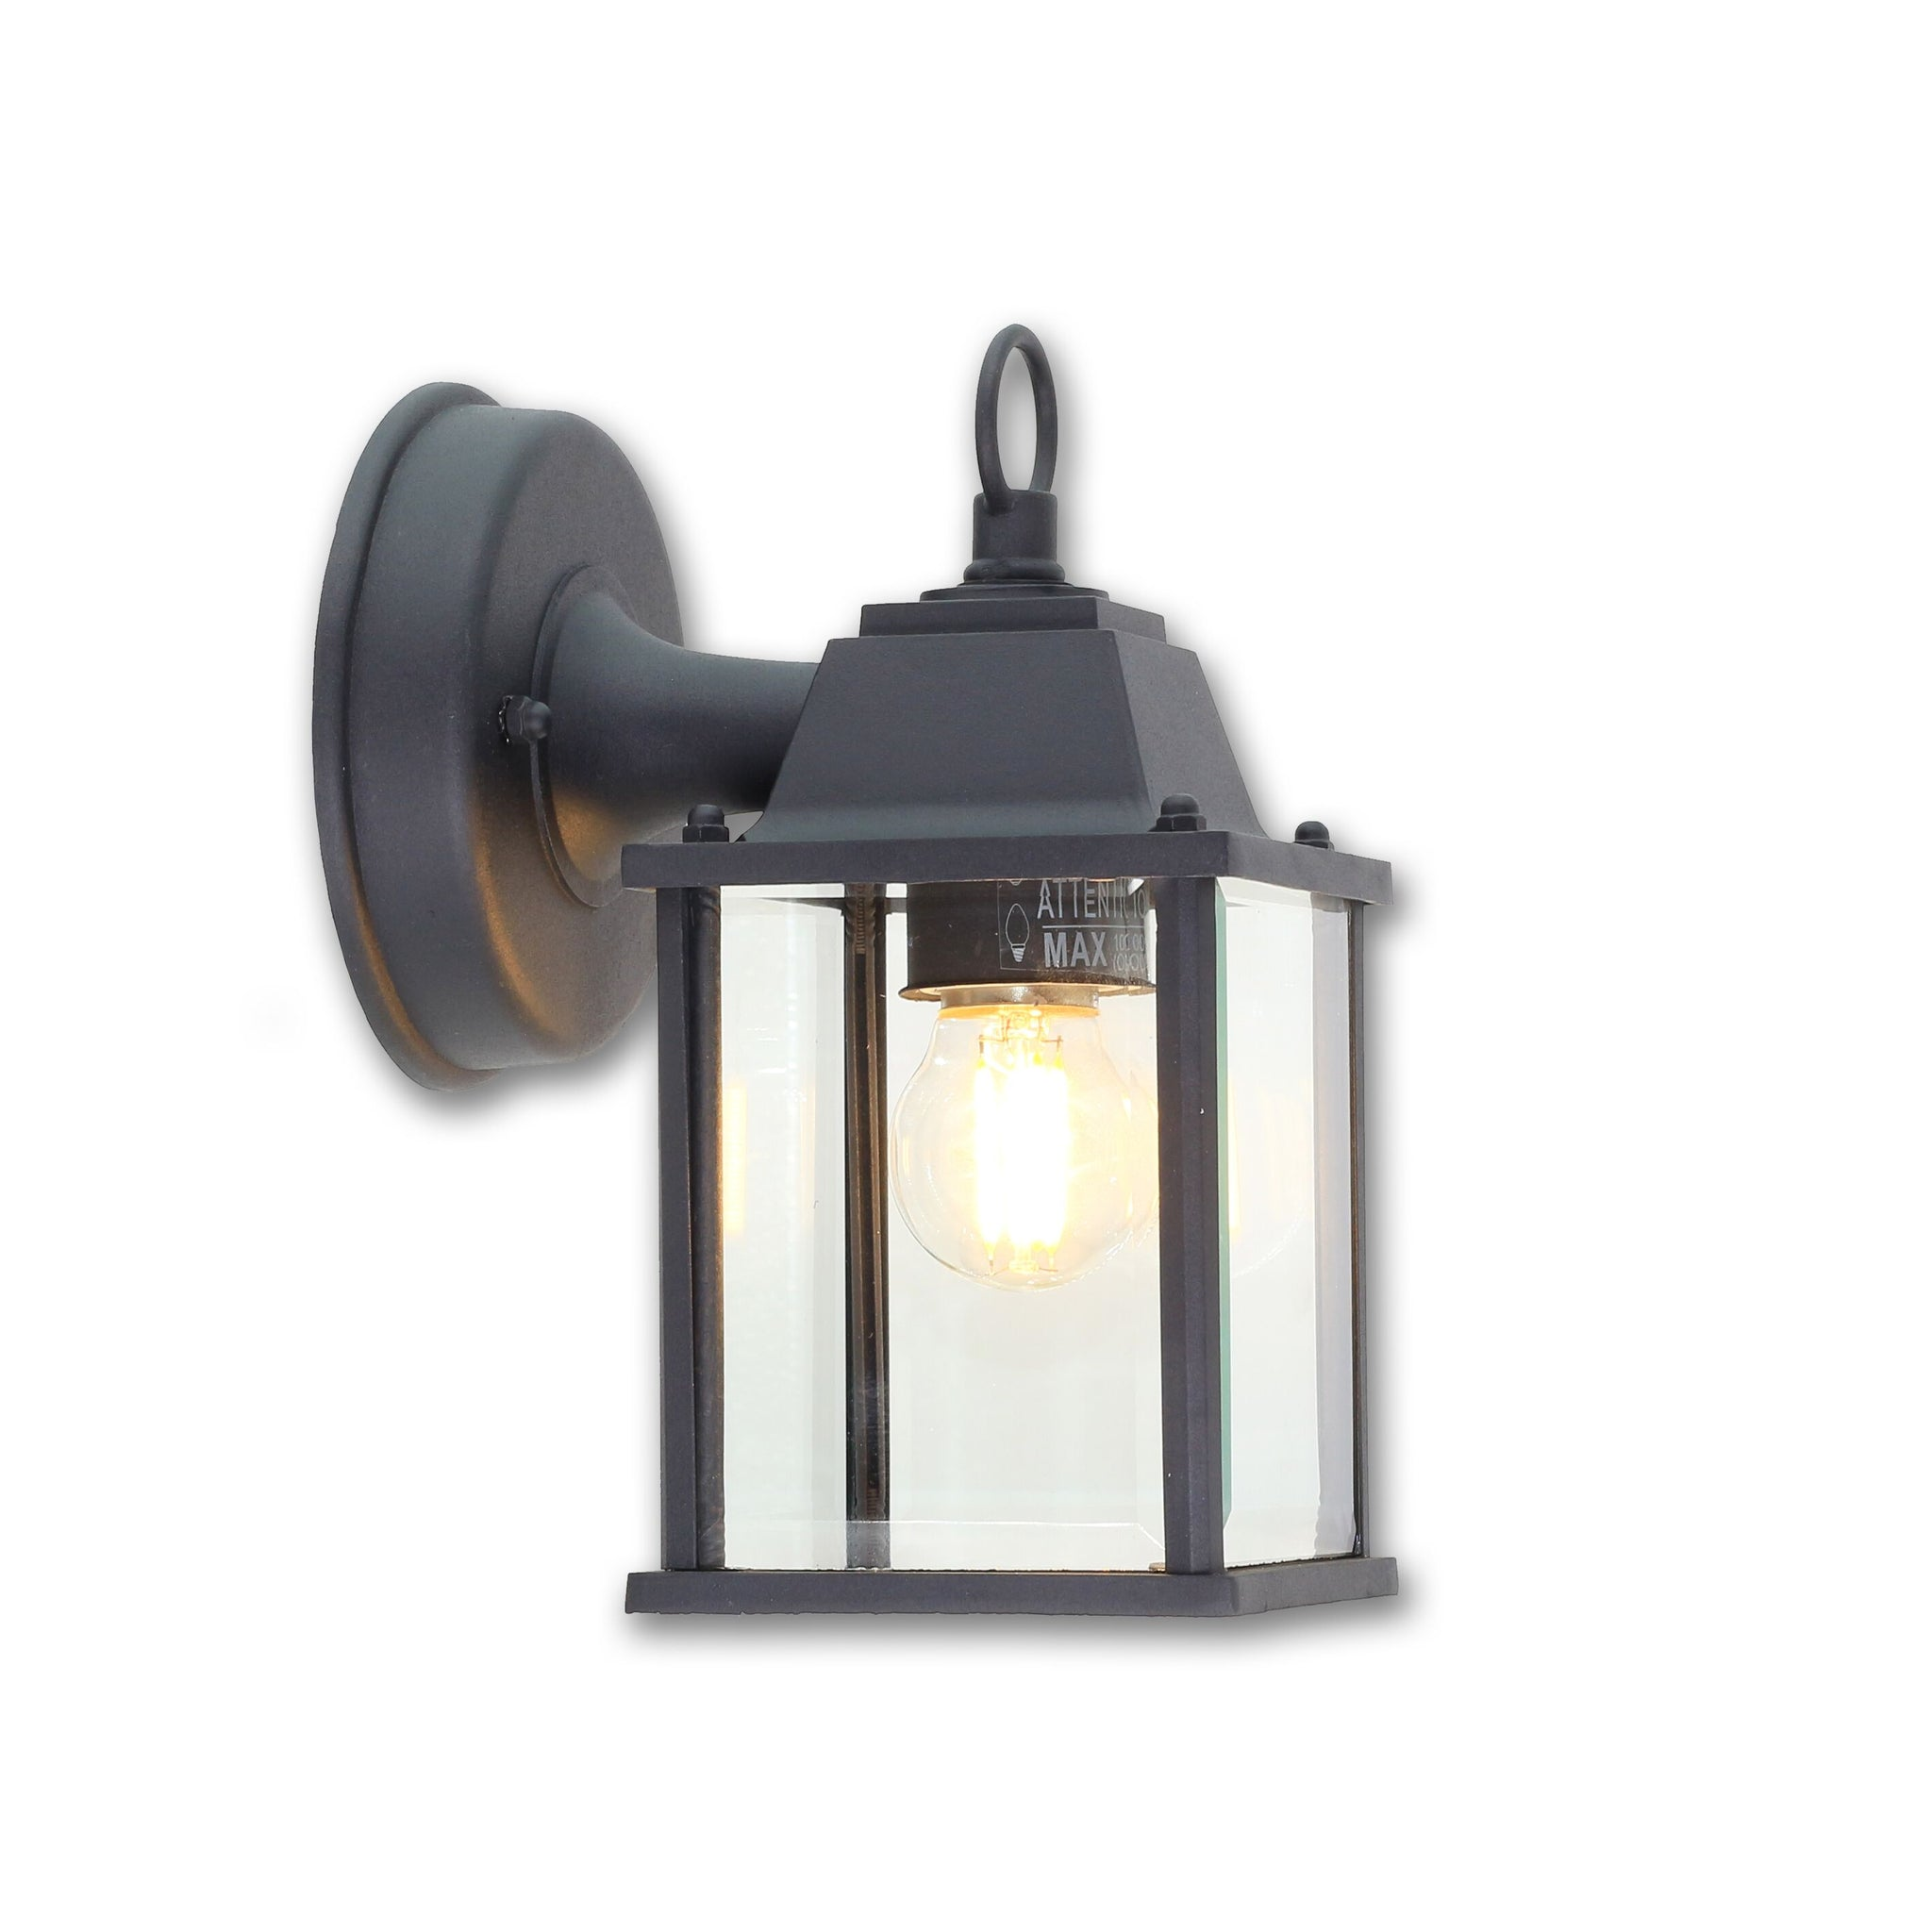 QPlus Porch Wall Lights/Wall Lanterns Simply Superb With Clear Glass Panels - Black/Bronze